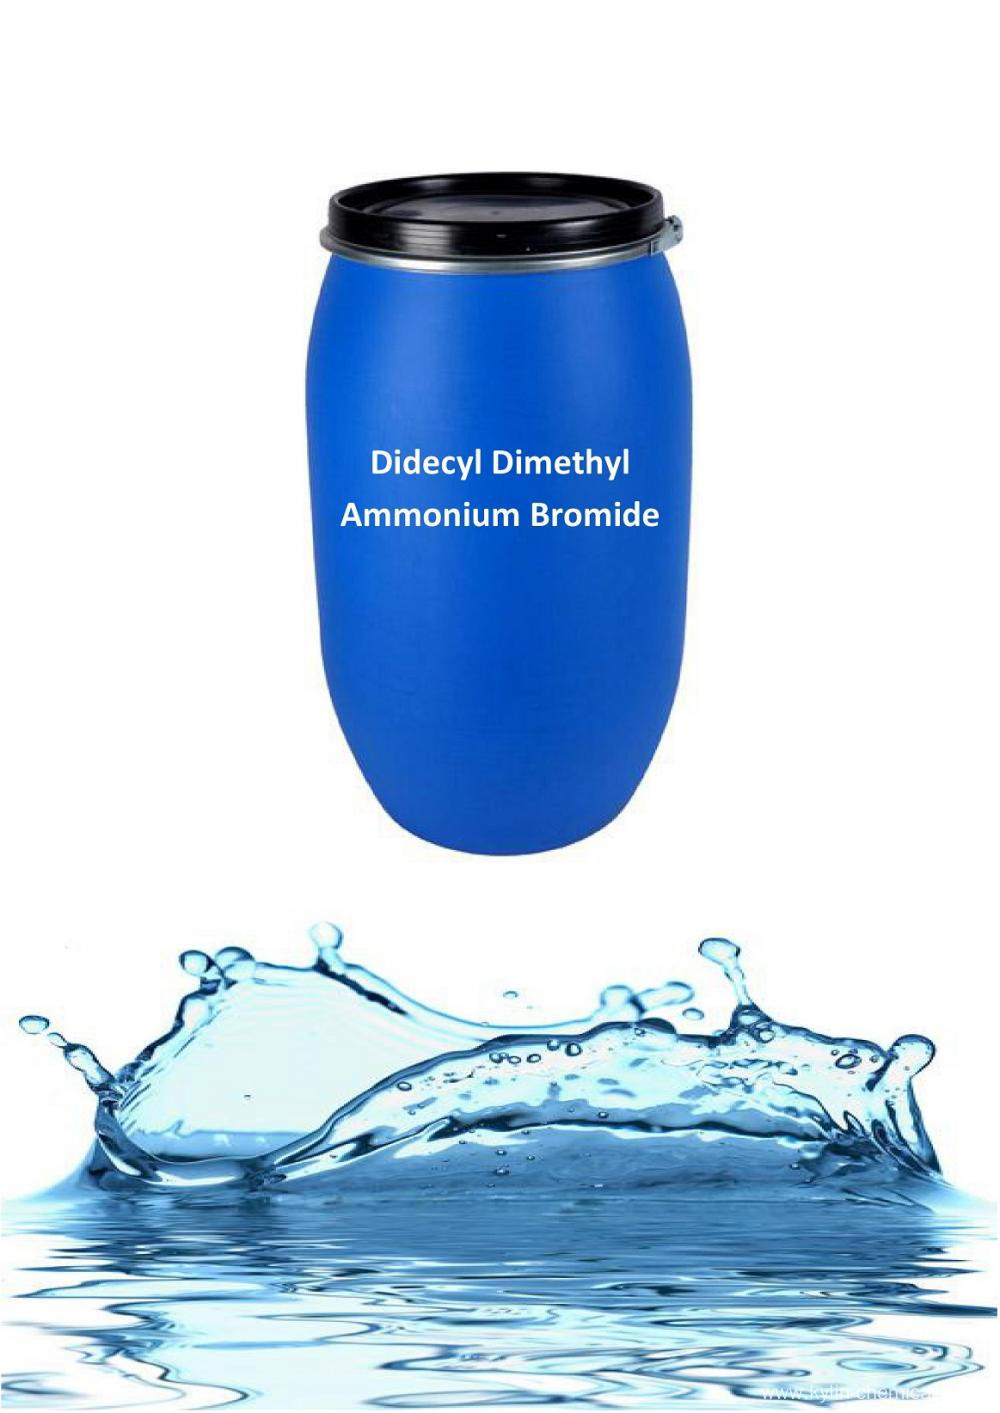 Didecyl Dimethyl Ammonium Bromide